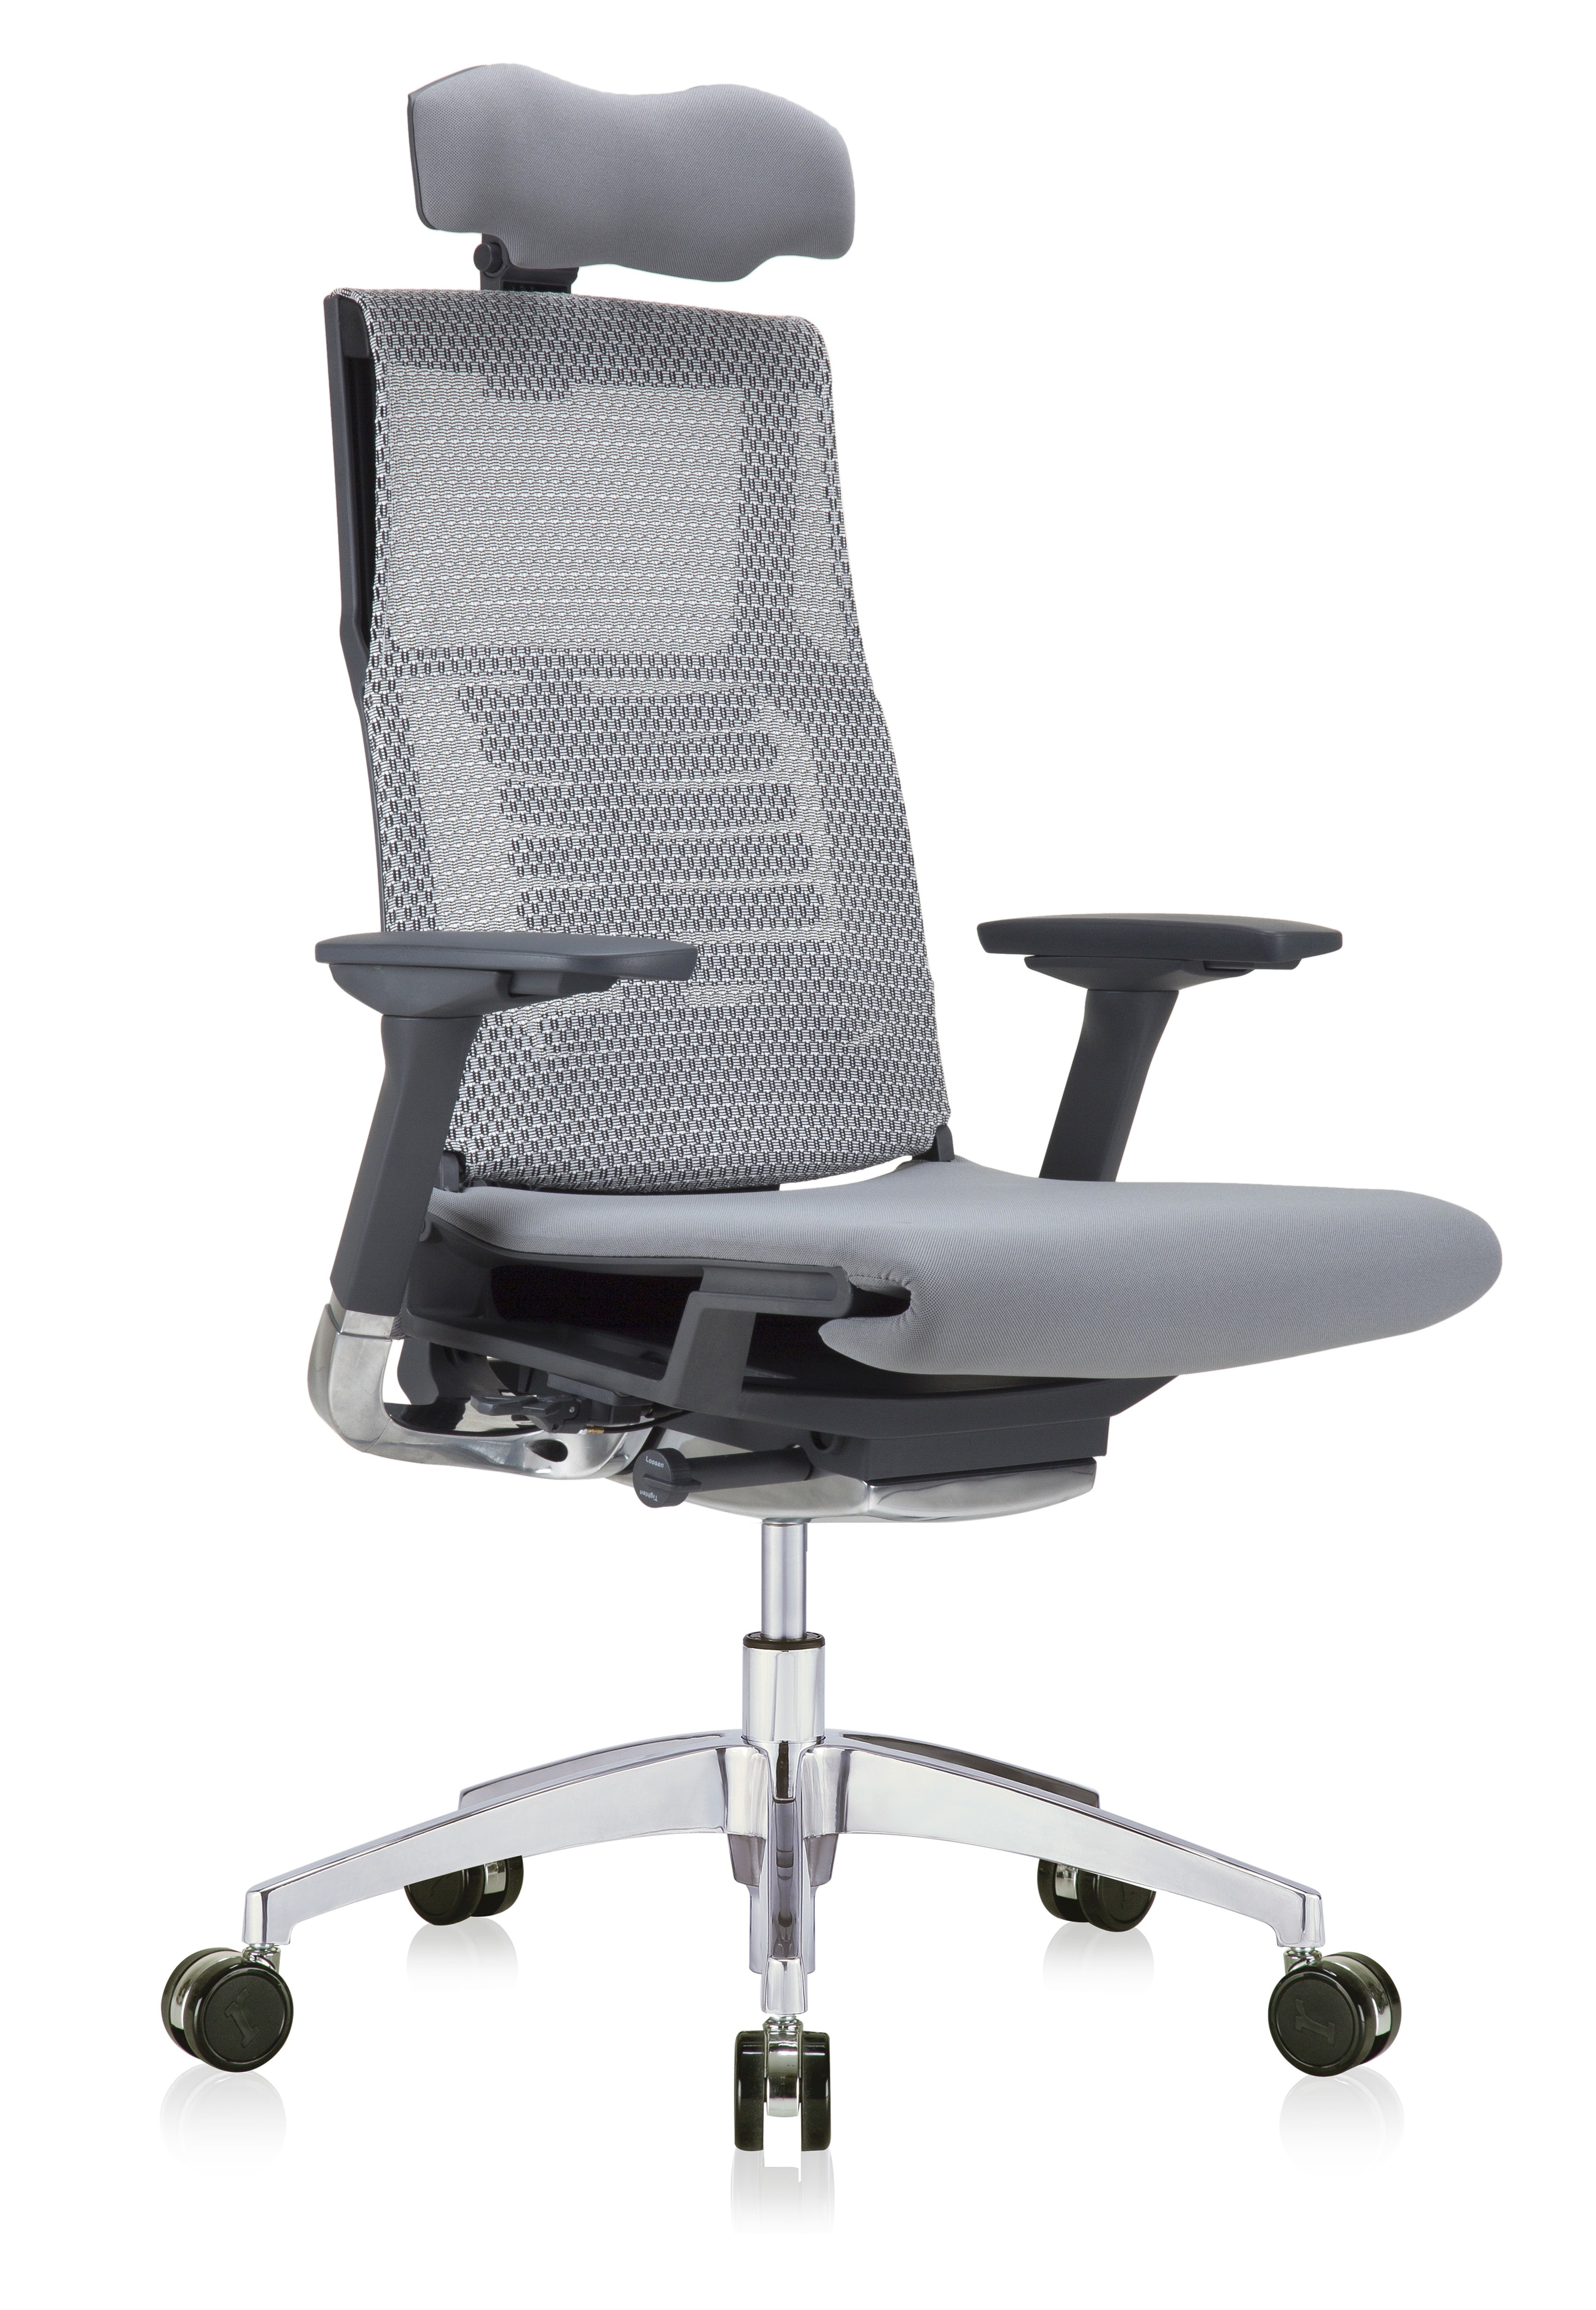 eurotech powerfit bluetooth enabled office chair with headrest